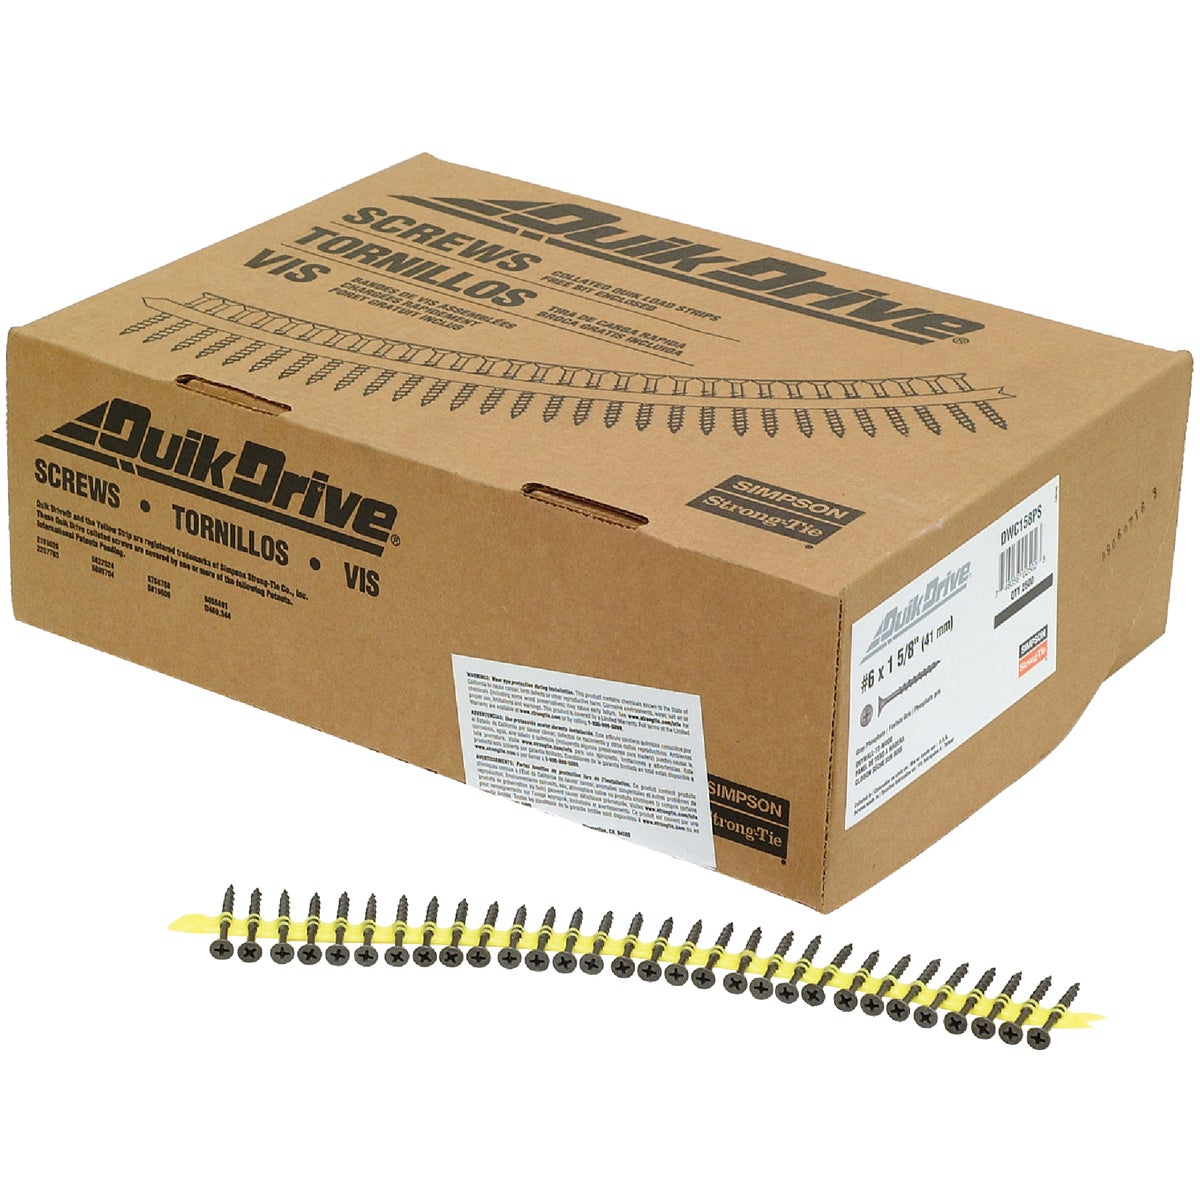 "1-5/8"" DRYWALL SCREW - DWC158PS by Simpson Strong Tie"